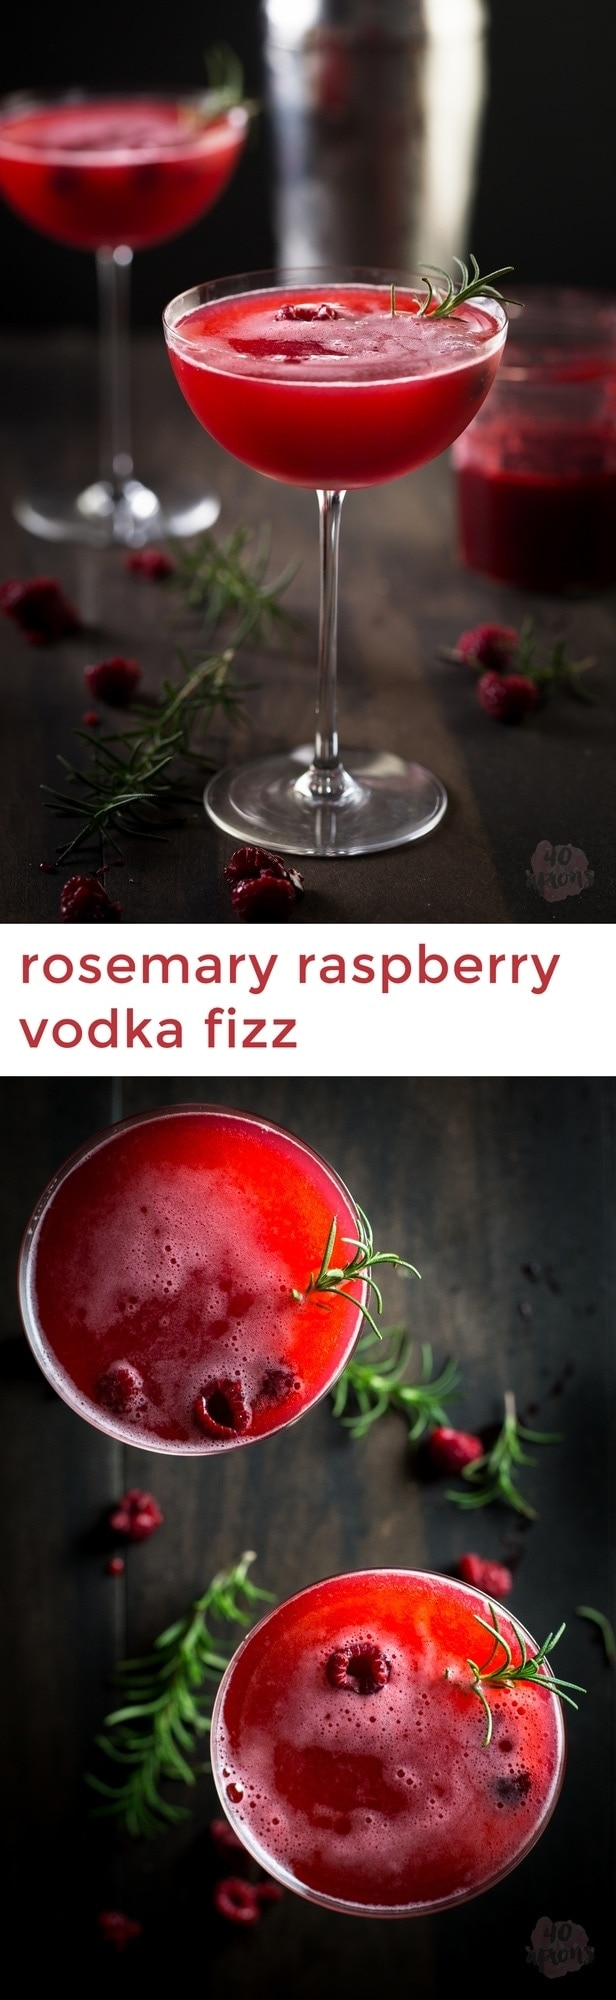 Rosemary raspberry vodka fizz - so flavorful and gorgeous, perfect for a winter kick!